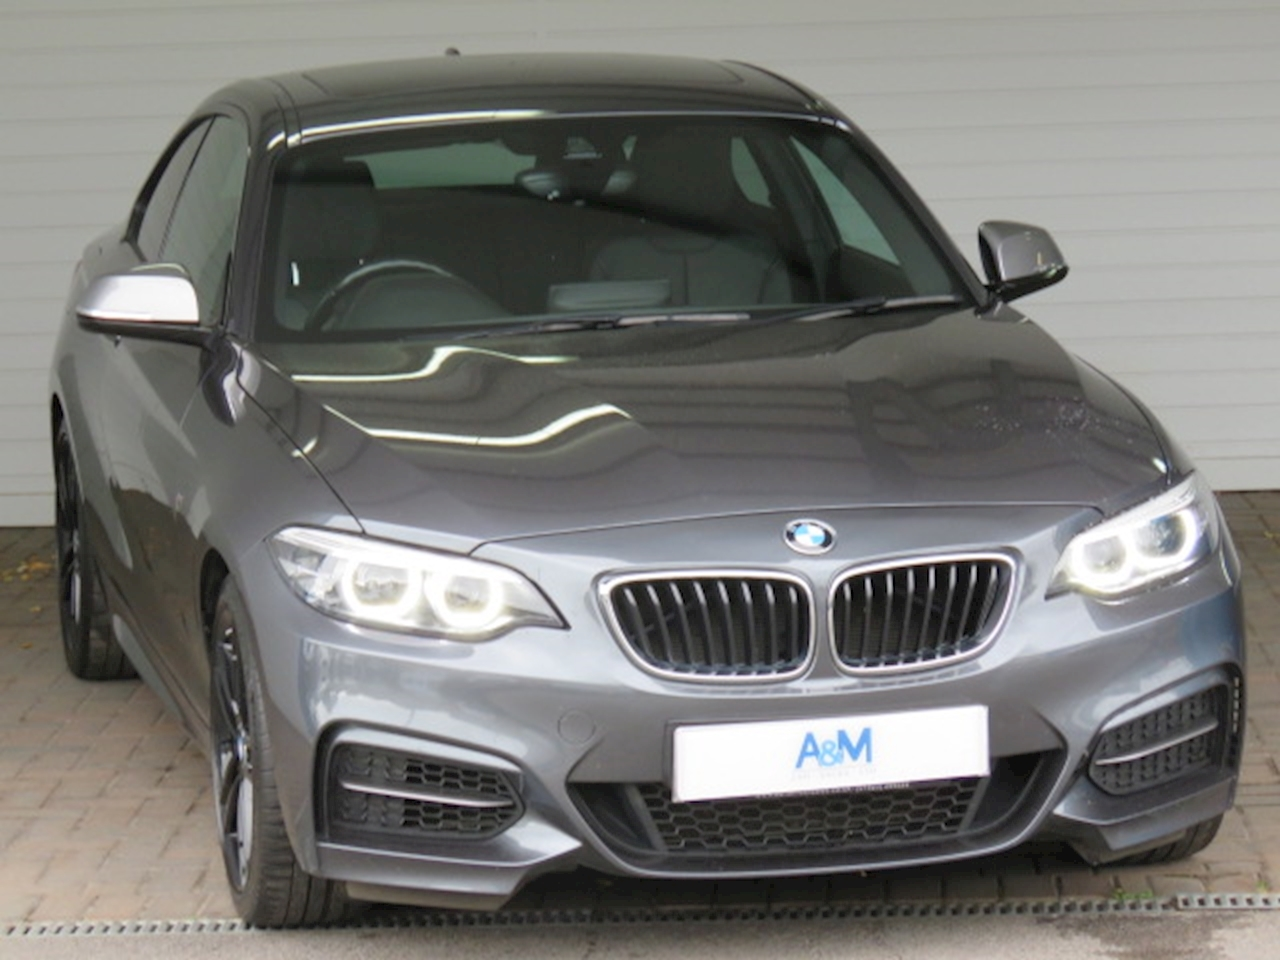 BMW 2 Series M240i Coupe 3.0 2dr Coupe Automatic Petrol